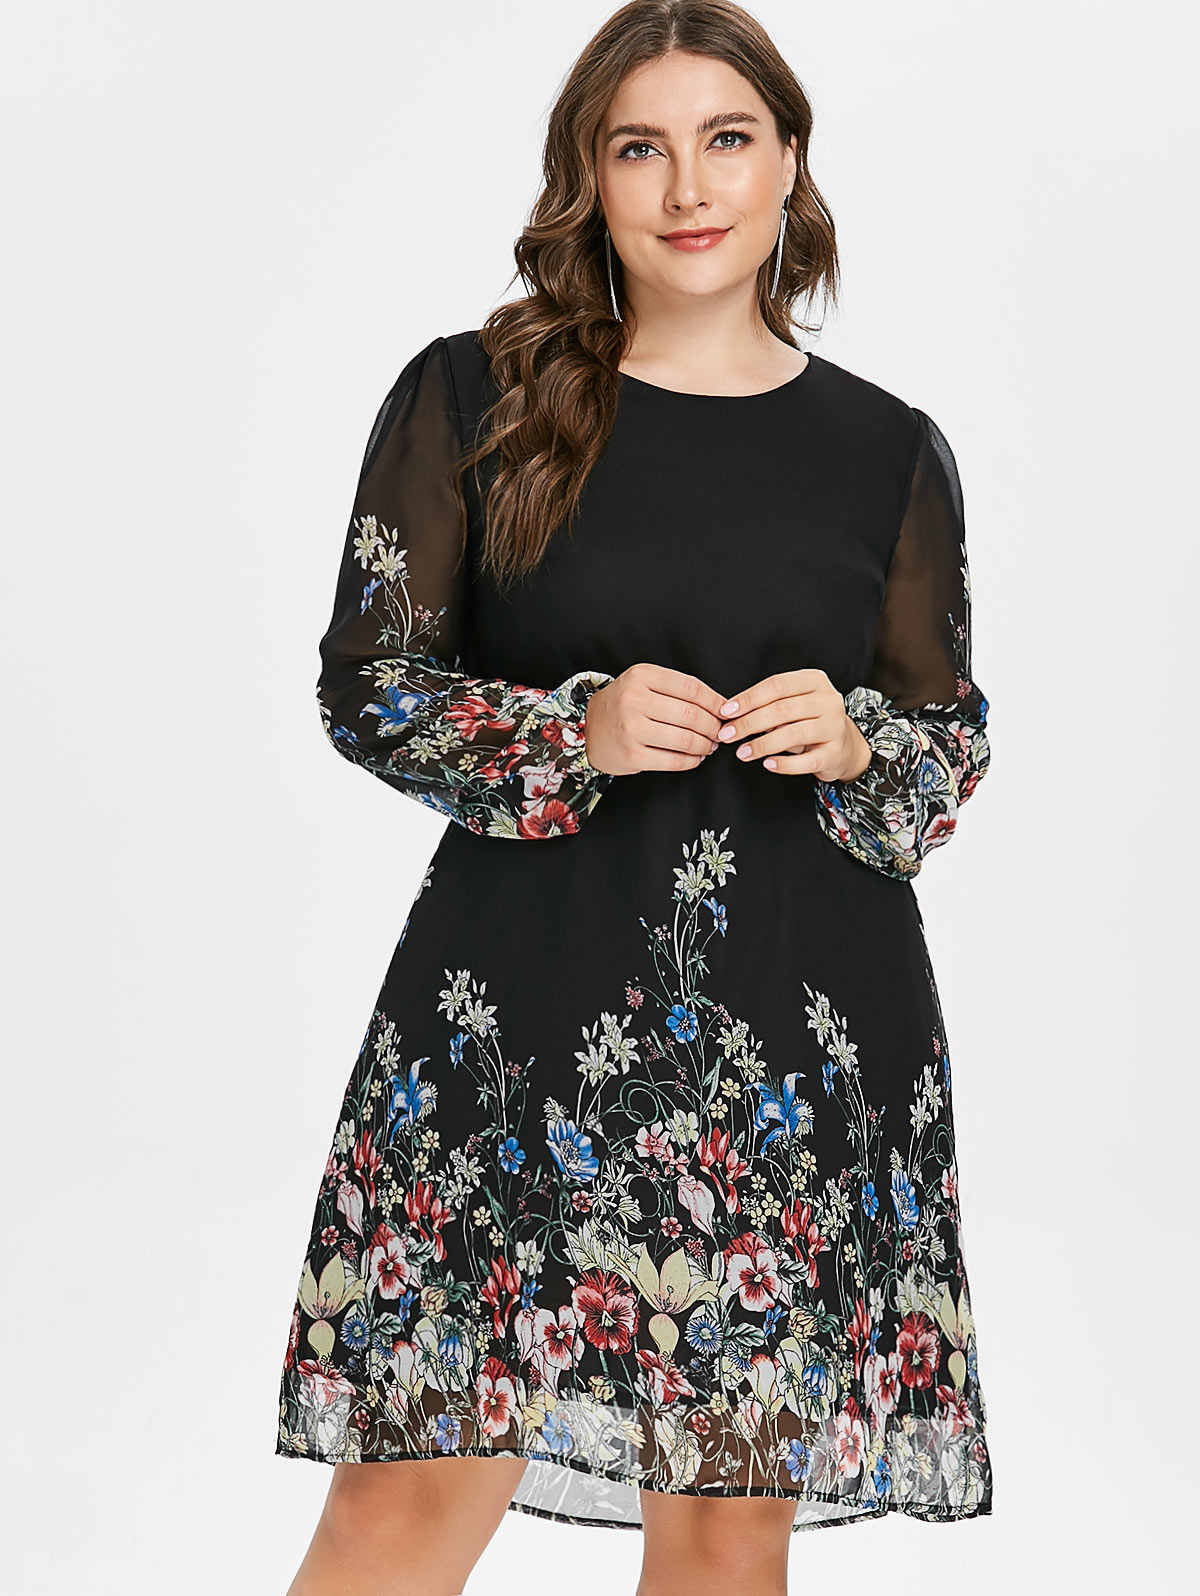 0462d292b24 Wipalo Multi Color Plus Size Floral Embroidery Tunic Dress Spring Summer  Elegant Tribal Flower Print Vocation